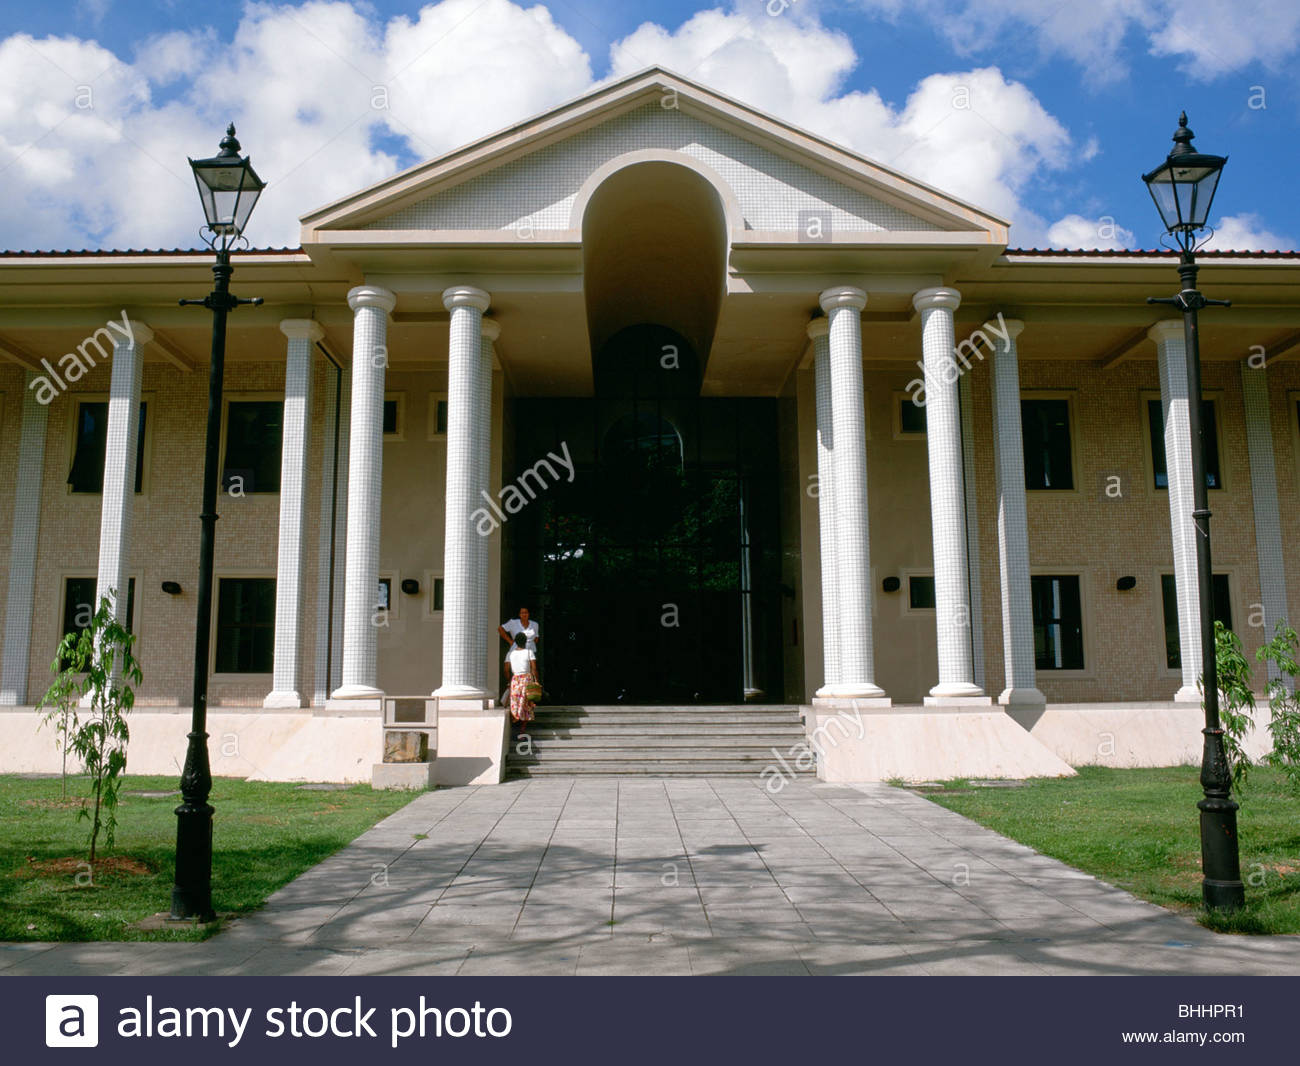 National Library and Archive, Victoria, Mahe, Seychelles. Artist: Dr Stephen Coyne - Stock Image